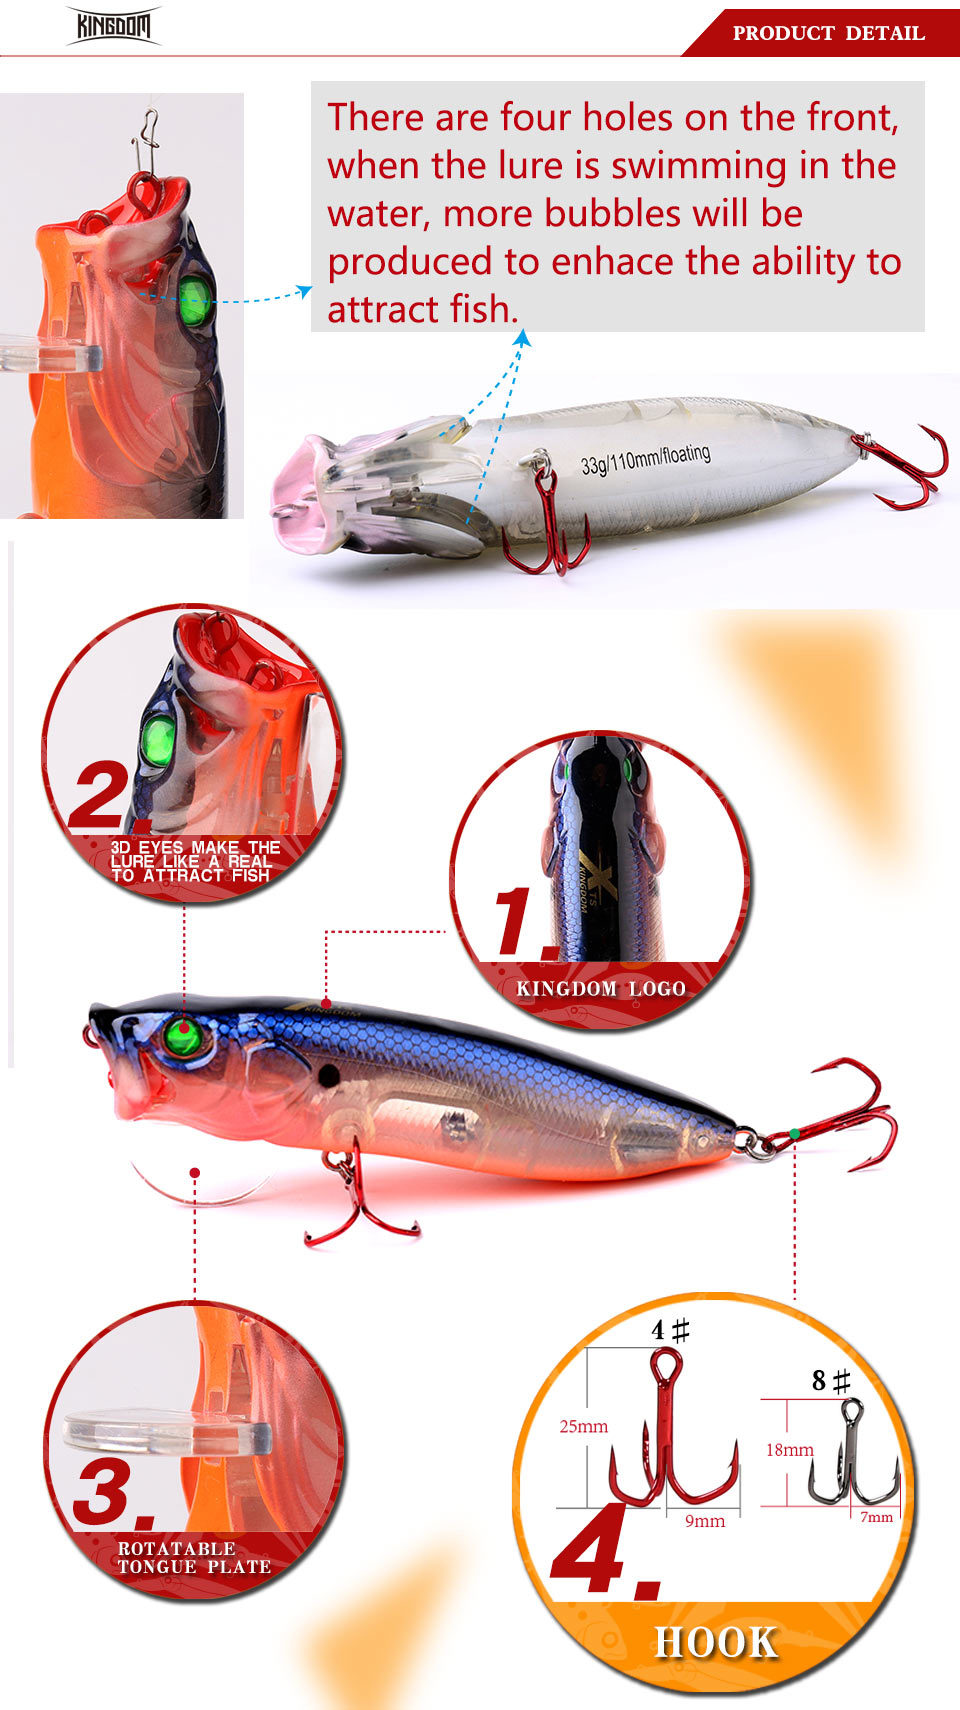 Kingdom Fishing Lures Hard Bait Topwater Popper Switchable Tongue Plate 70mm 9.5g 90mm 16g 110mm 33g Artificial Baits Model 5367 (3)